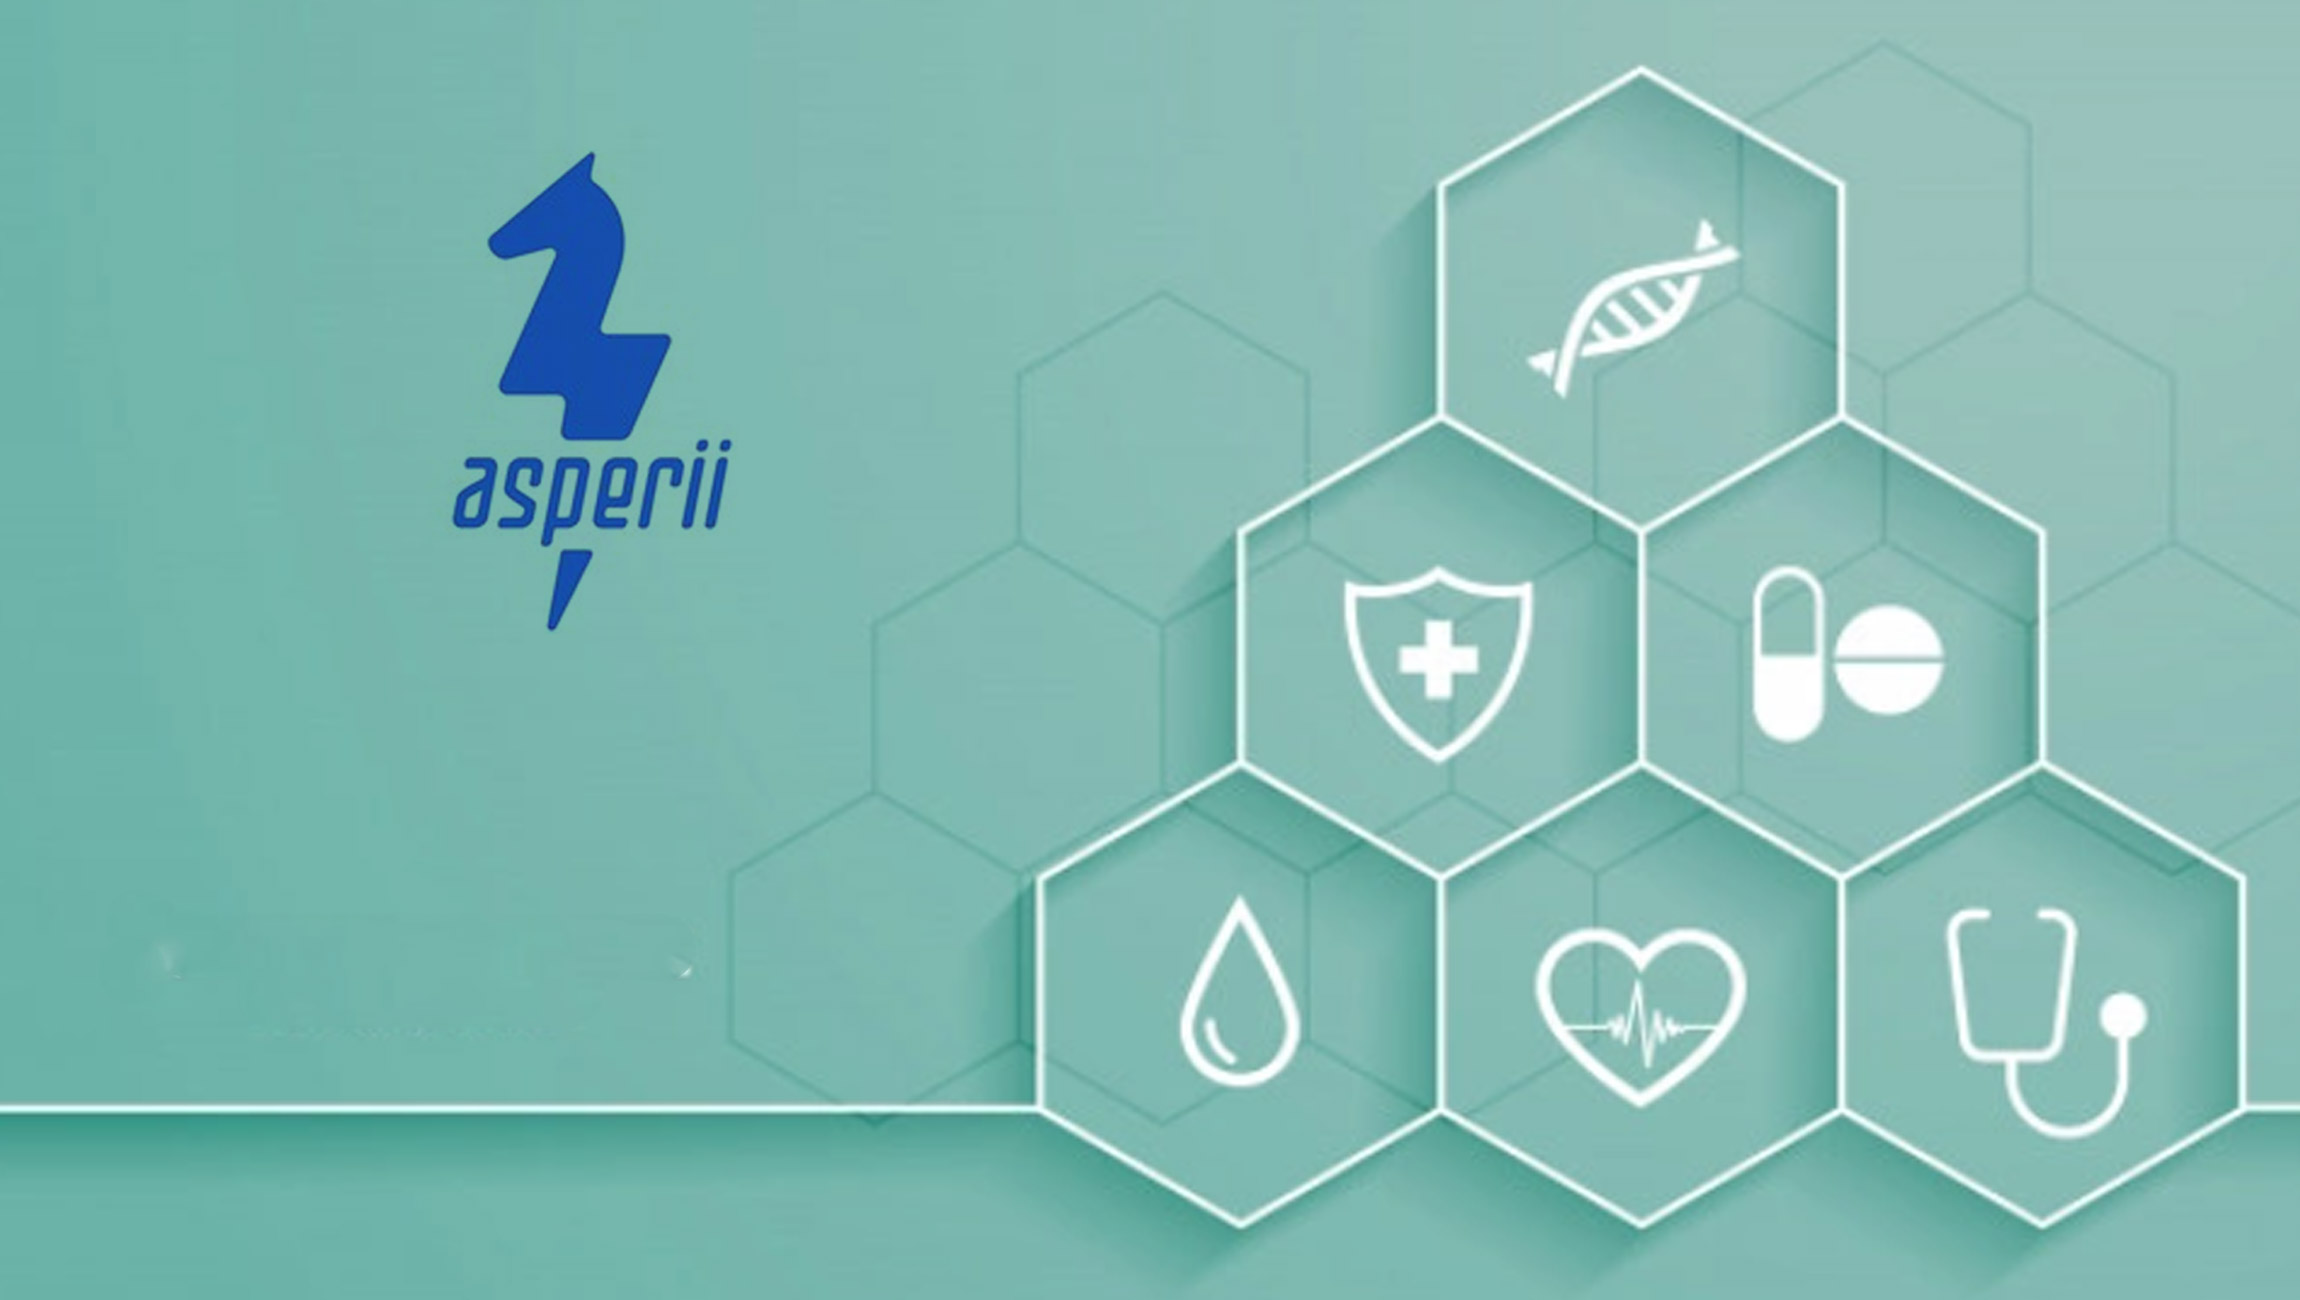 Drive-DeVilbiss-Healthcare-Chooses-Asperii-to-Deploy-a-Tailored-Salesforce-Solution-to-Boost-Operational-Efficiencies